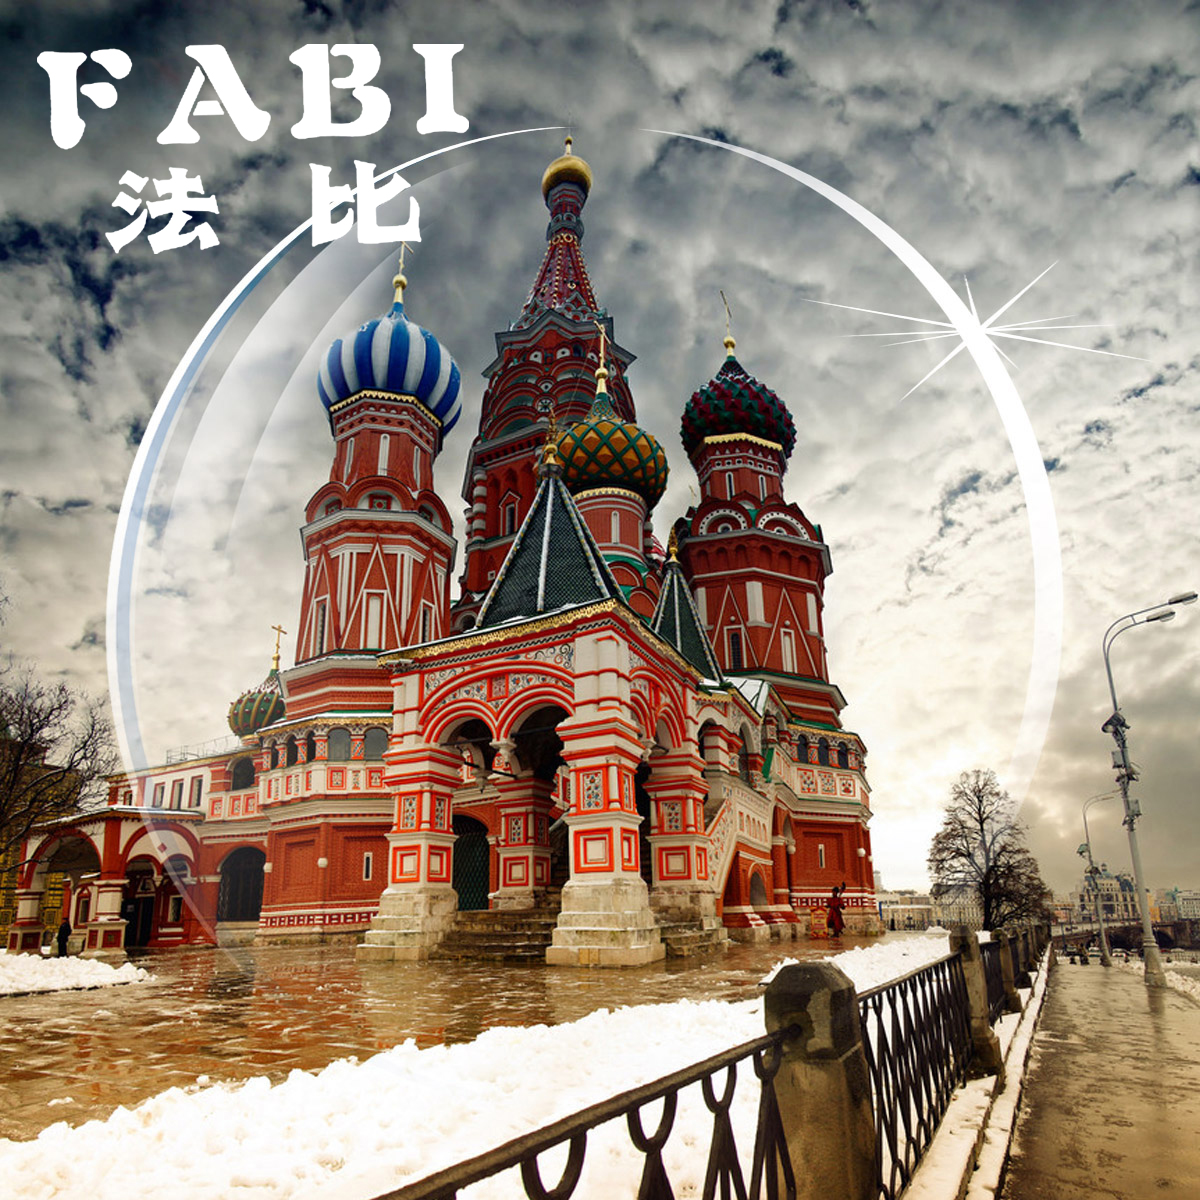 Линзы для очков Law FB/604 FABI 1.61 localized law